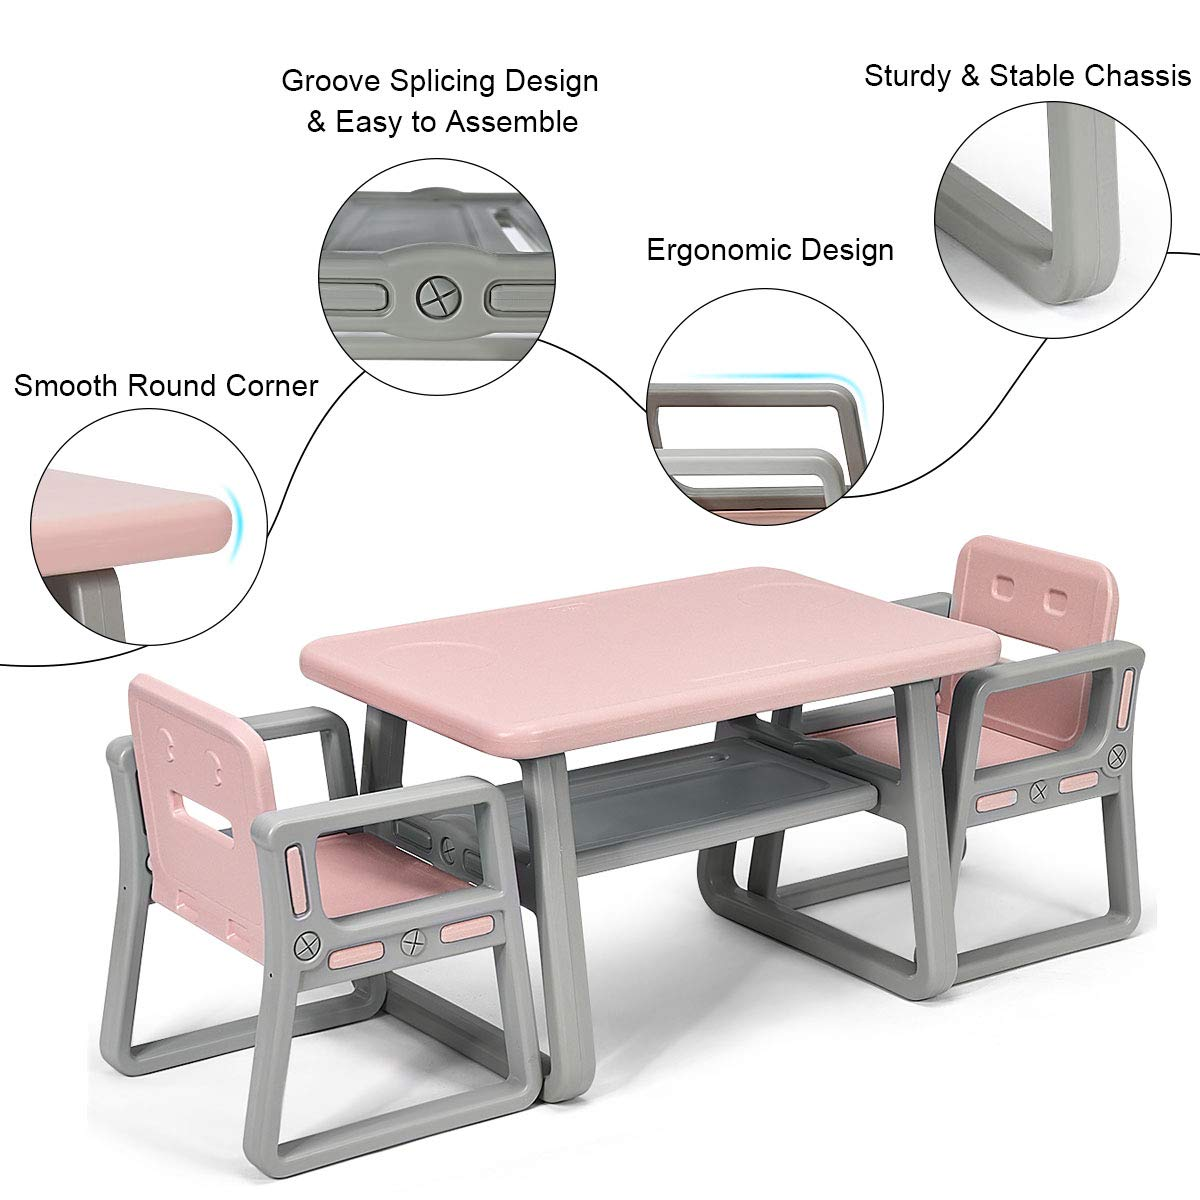 Costzon 3 Piece Kids Table and 2 Chairs Set, Learning Activity Play Table, Baby Dining Table, Children Desk Chair for 1-3 Years, Kids Furniture Set (Pink) by Costzon (Image #3)